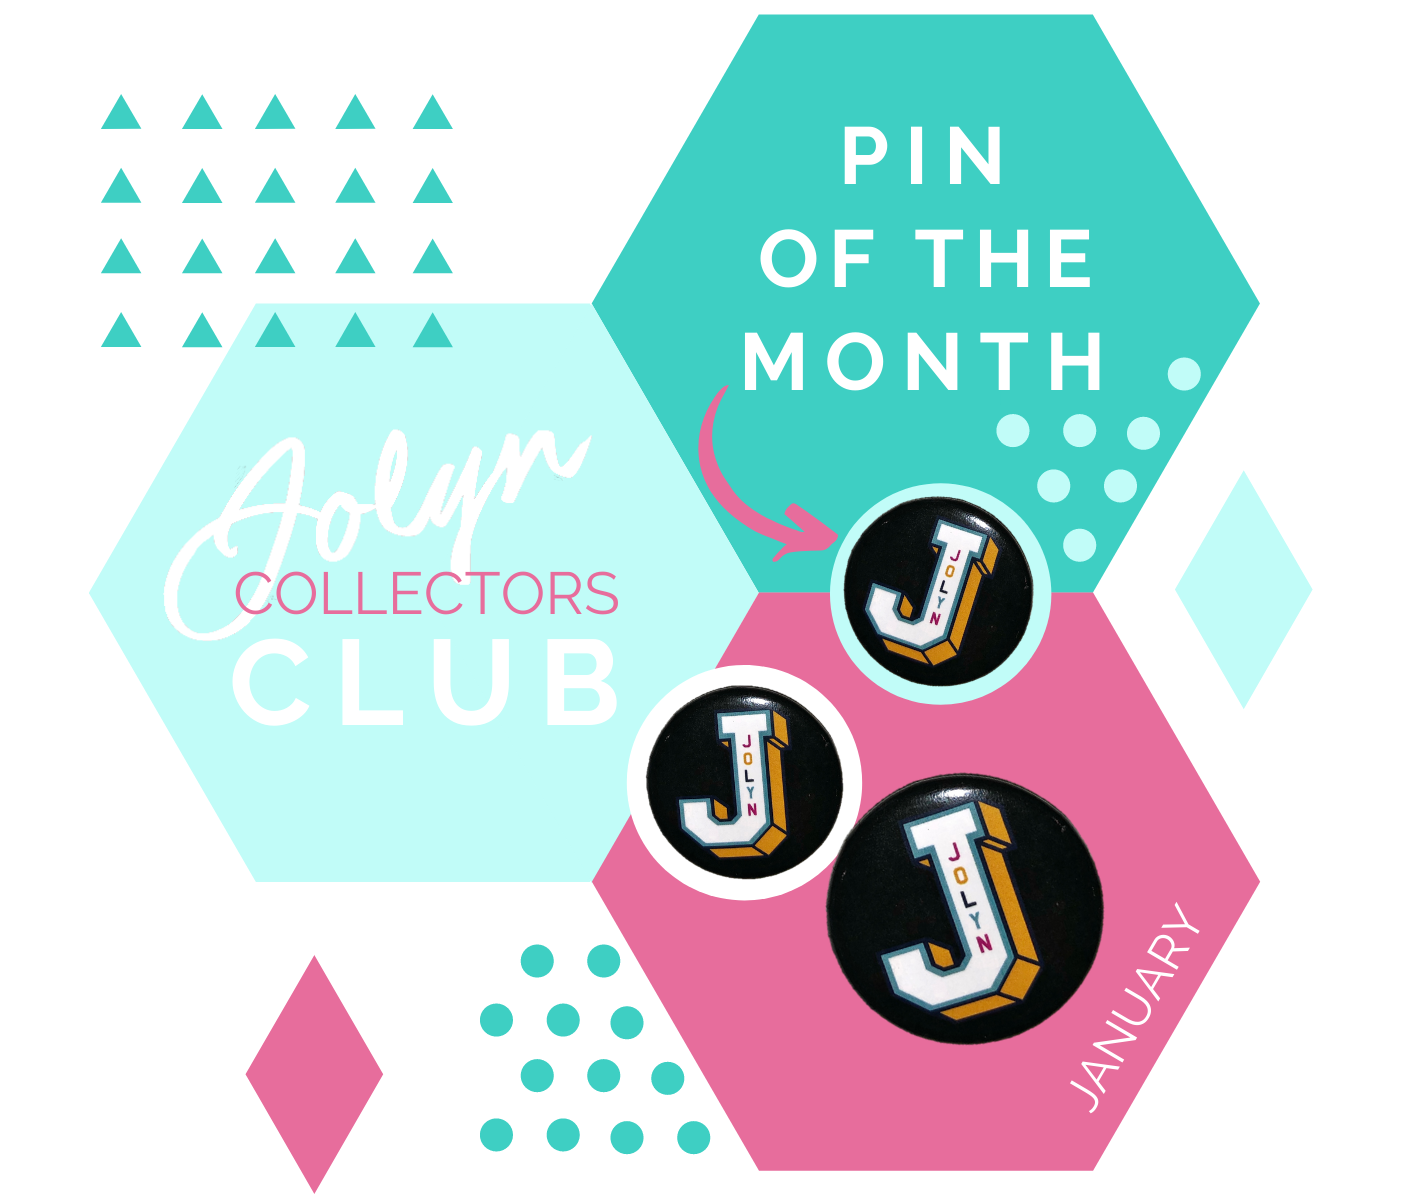 jolyn australia swimwear blog collectors pins pin of the month January 2020